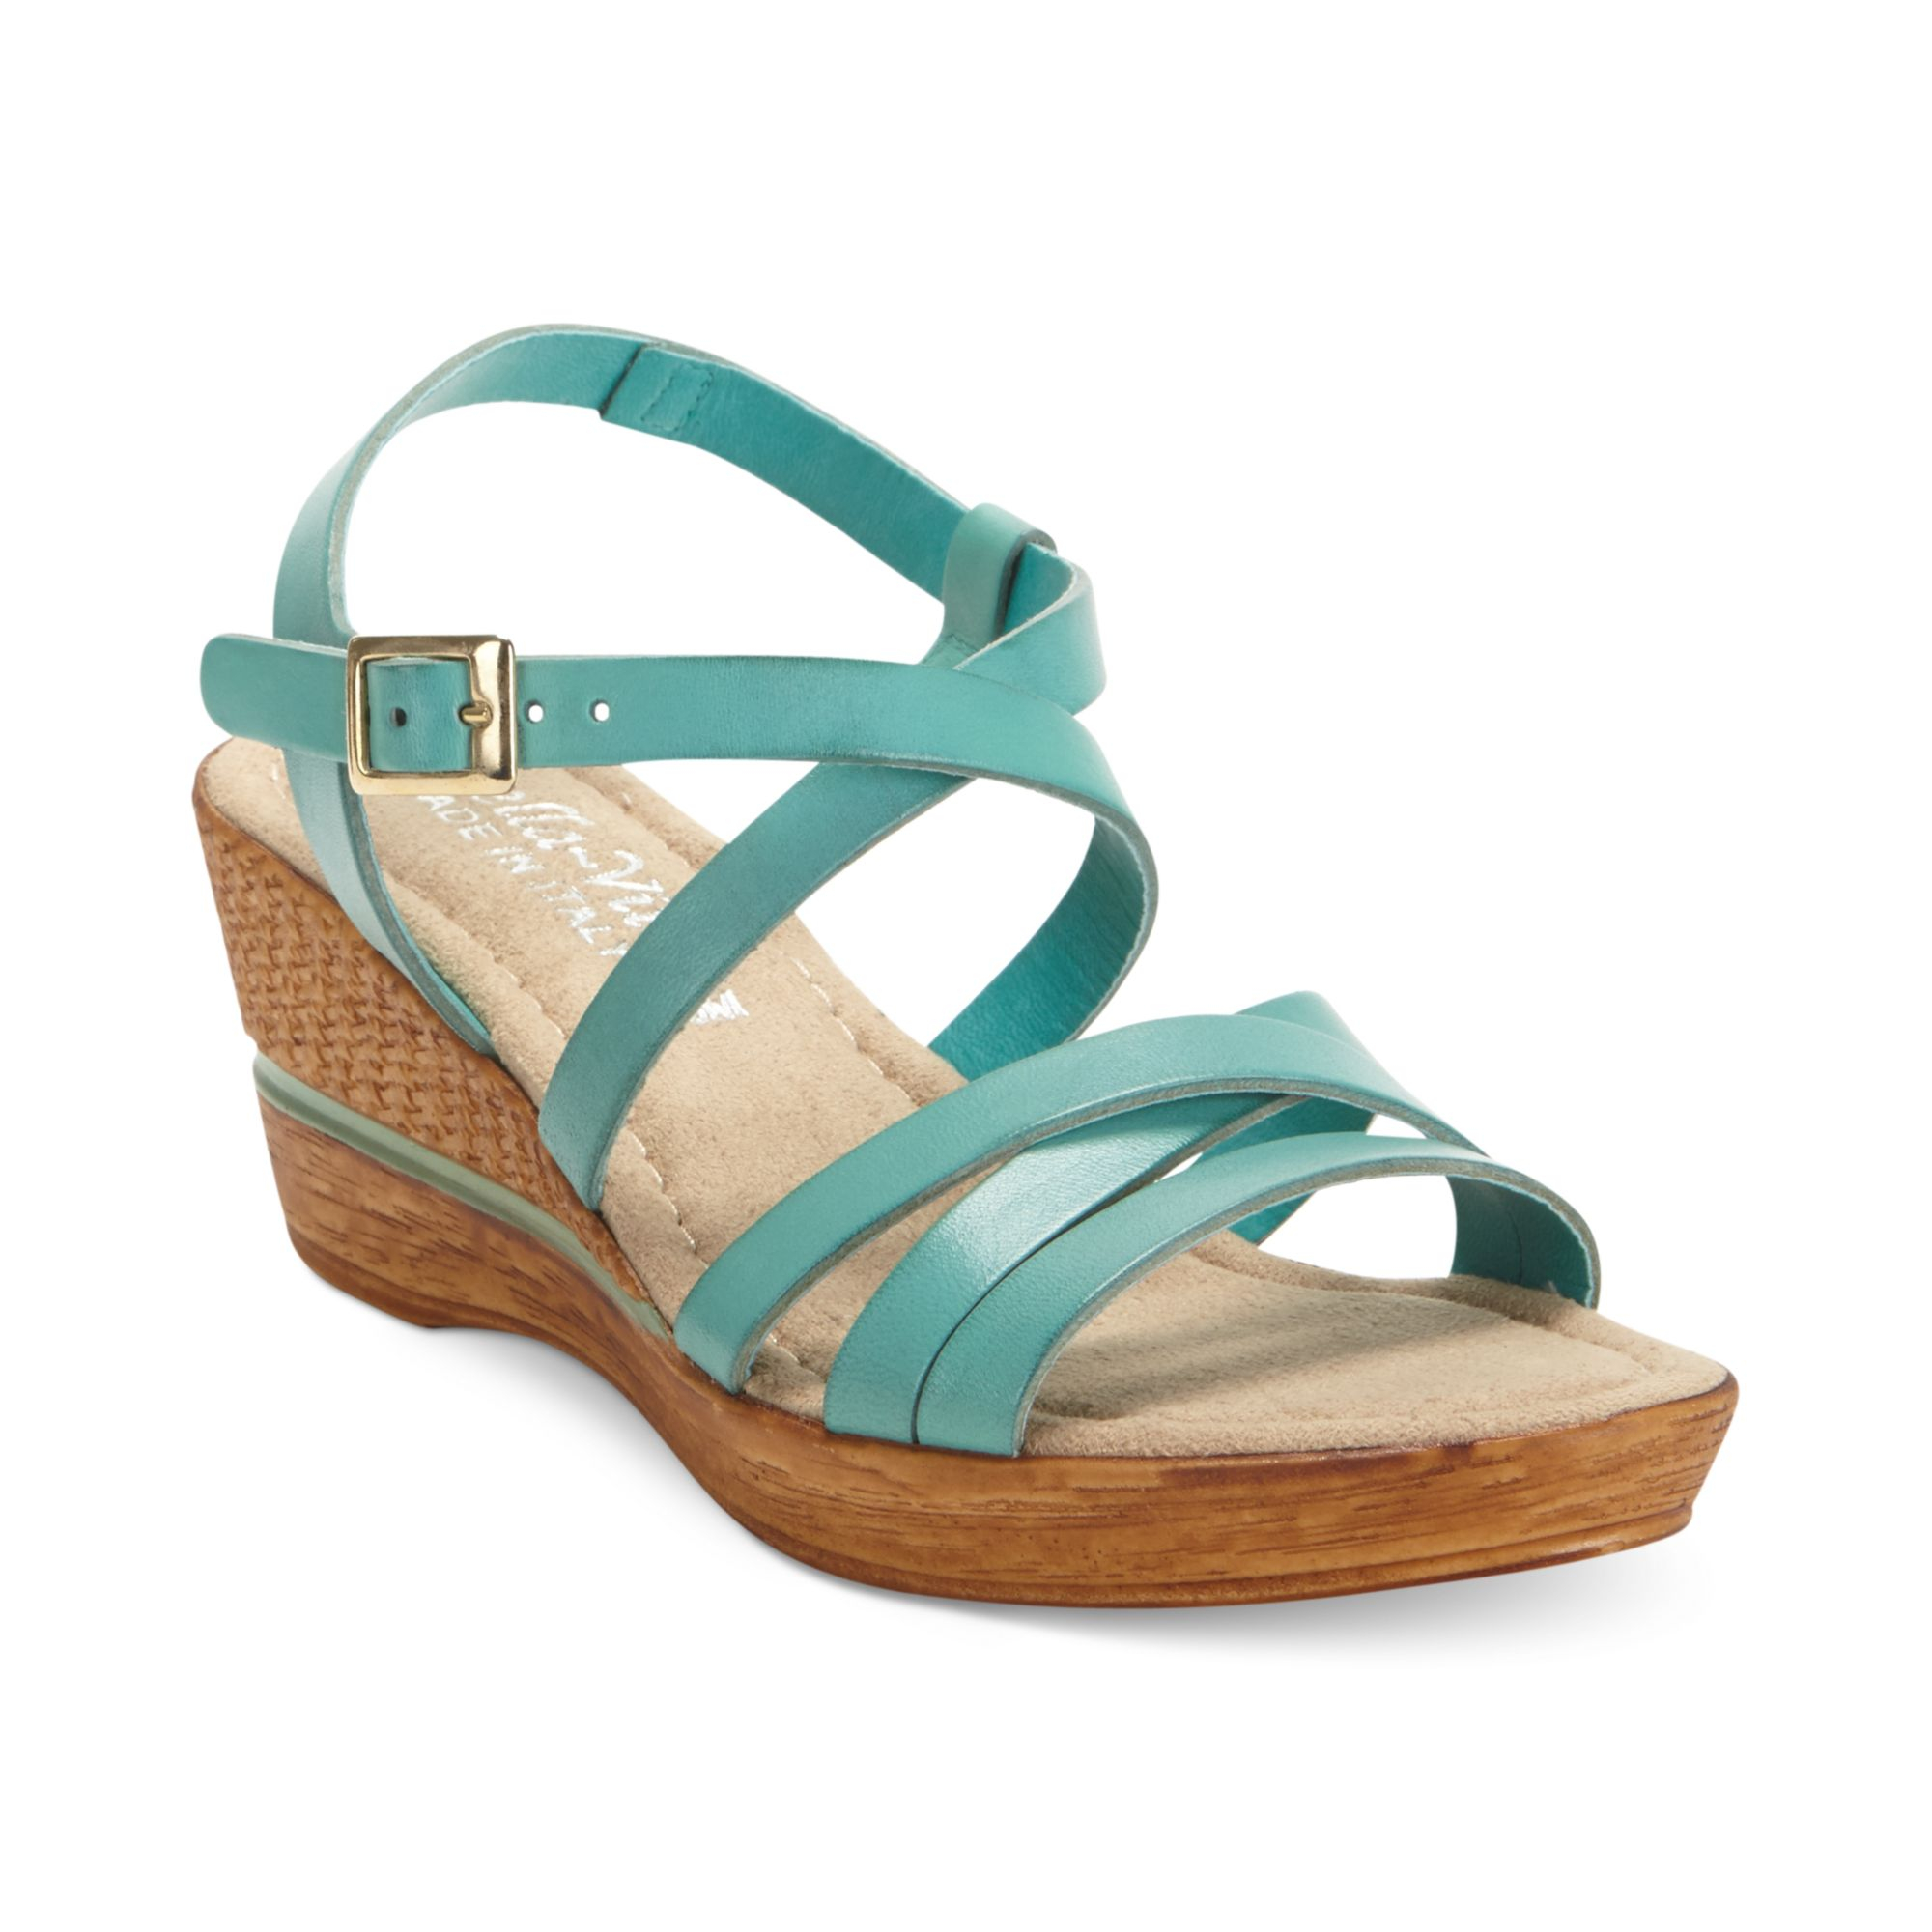 M And S Wedge Shoes